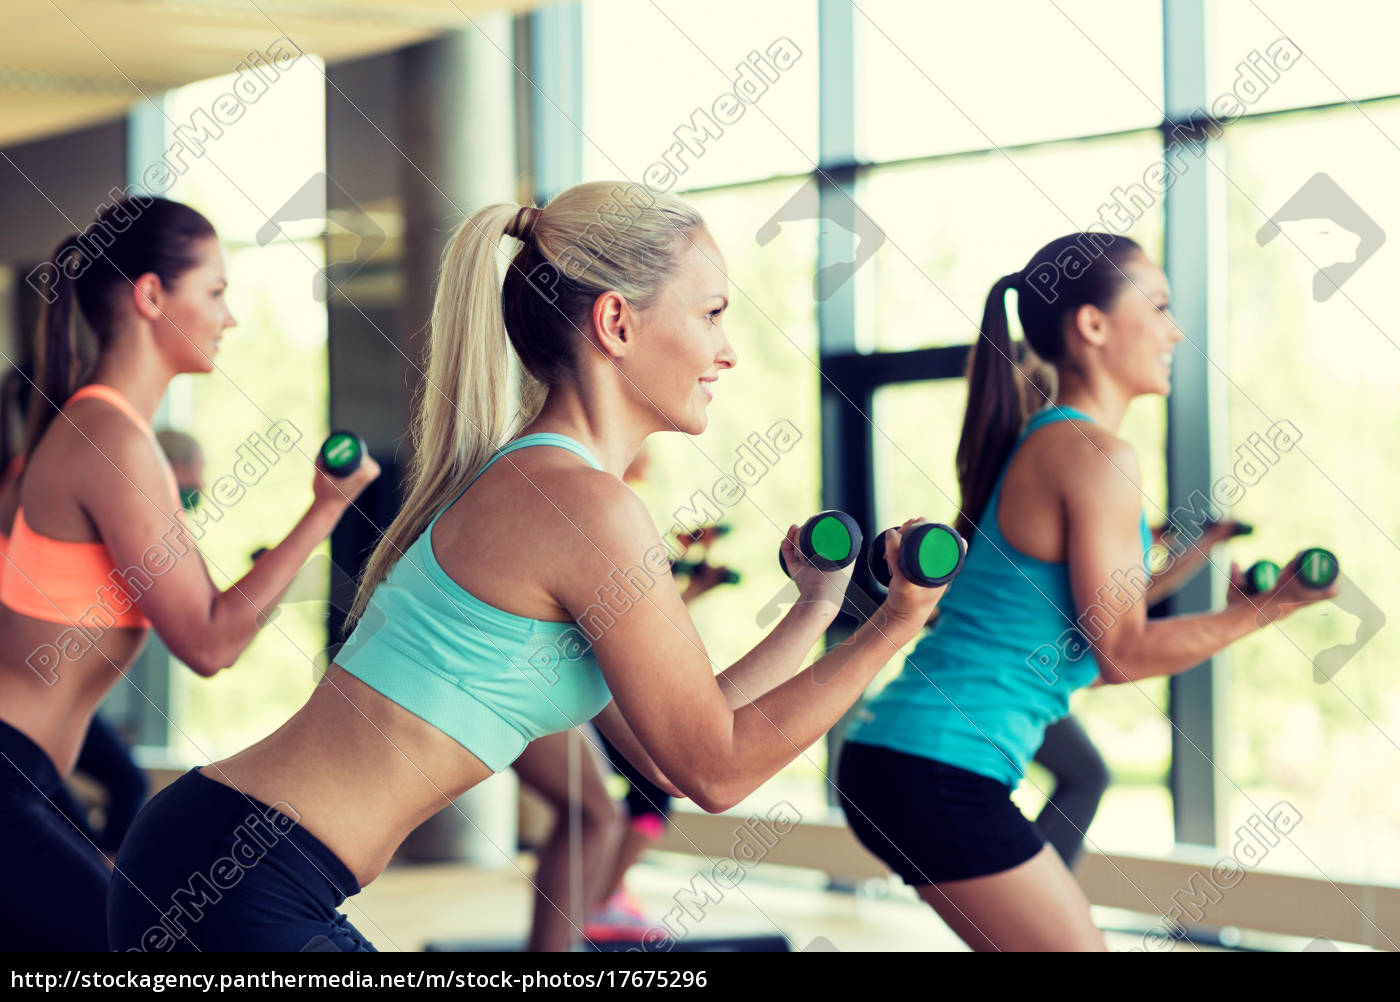 group, of, women, with, dumbbells, and - 17675296